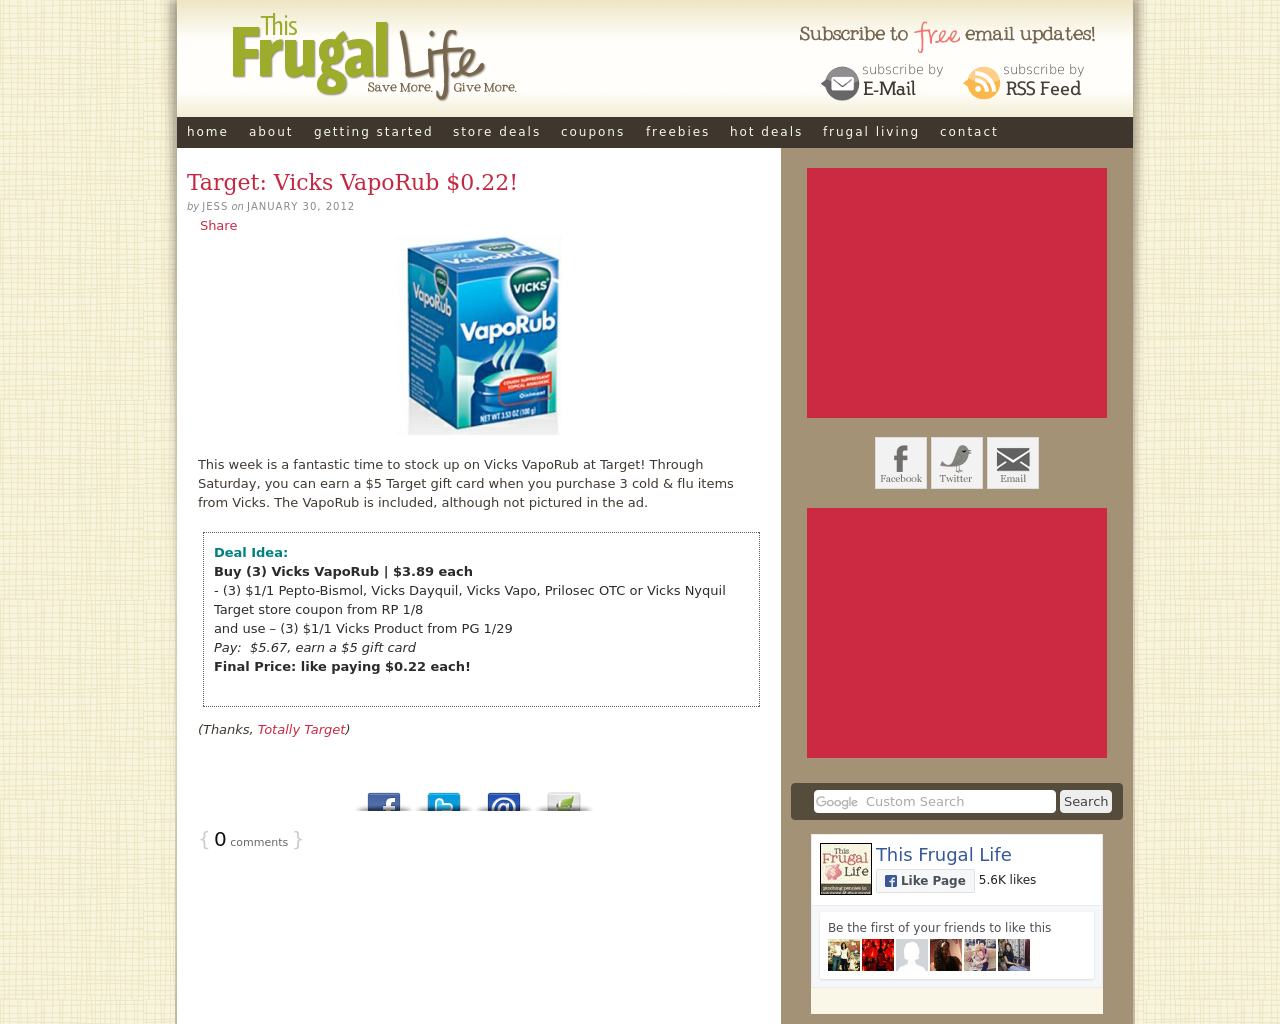 This-Frugal-Life-Advertising-Reviews-Pricing